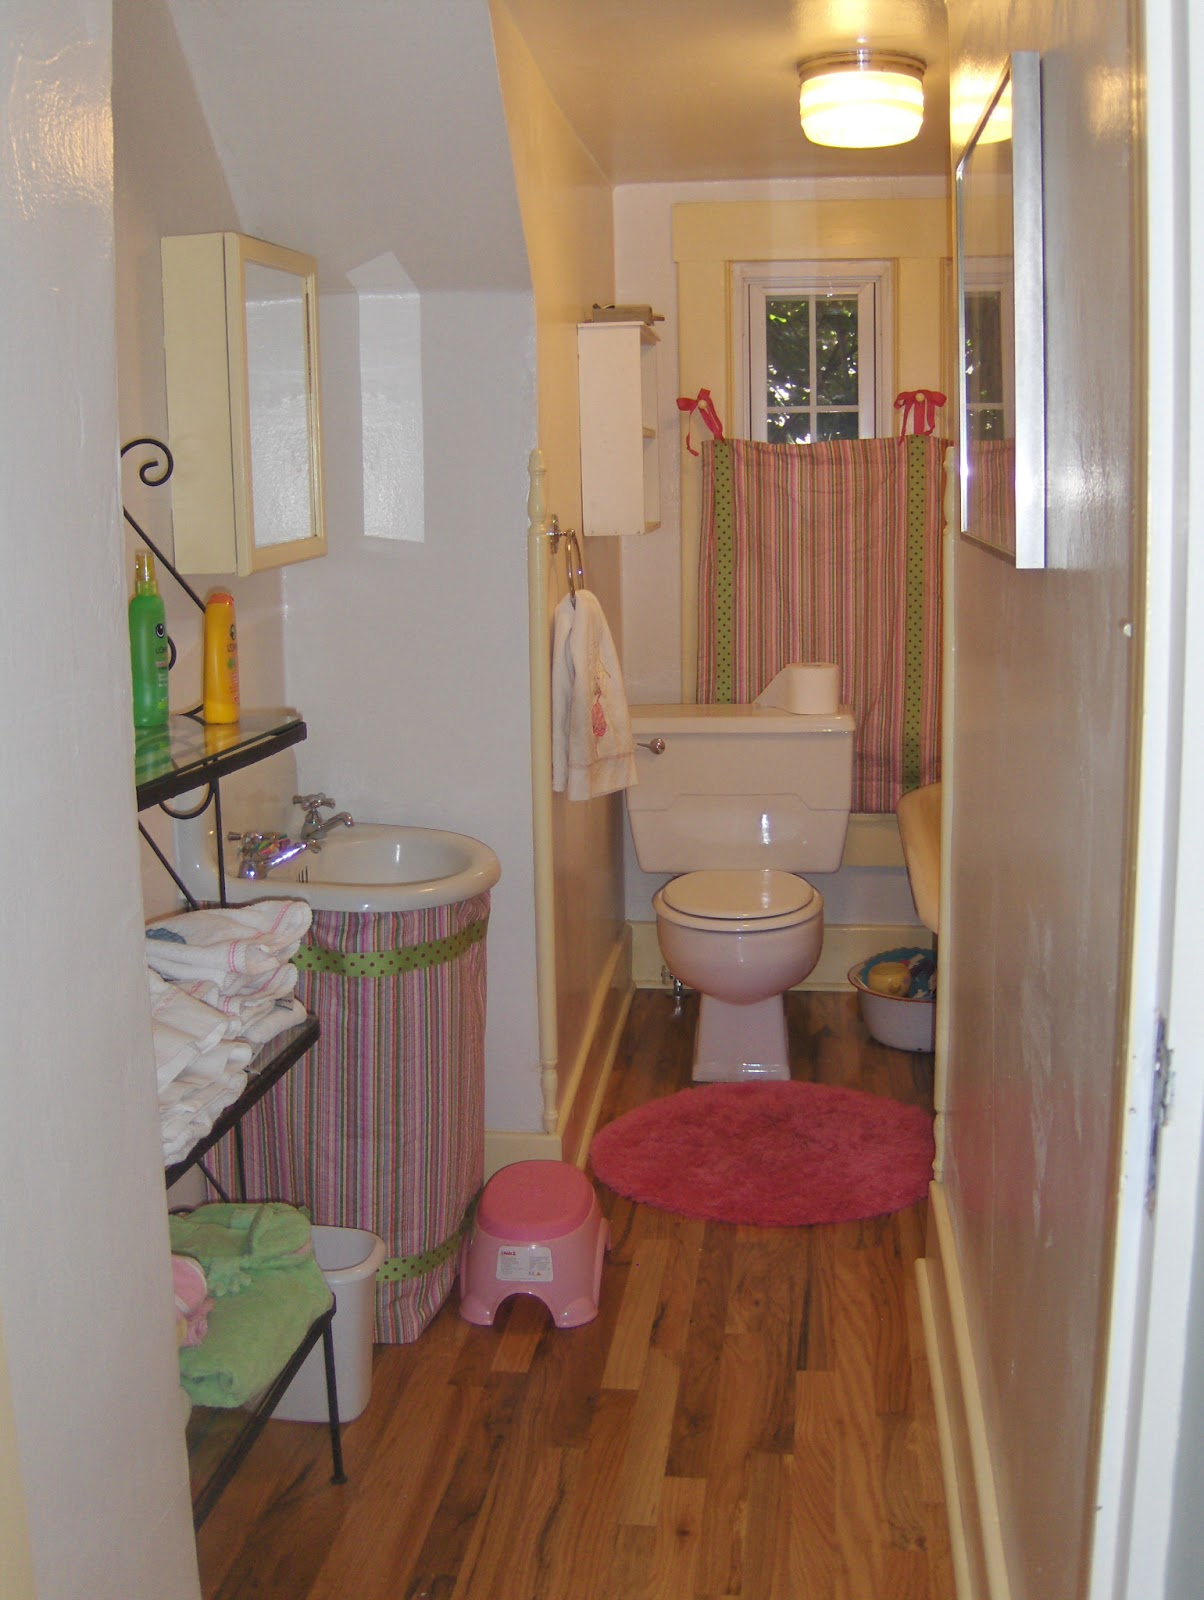 A marmie life very small bathroom remodel for Really small bathroom remodel ideas